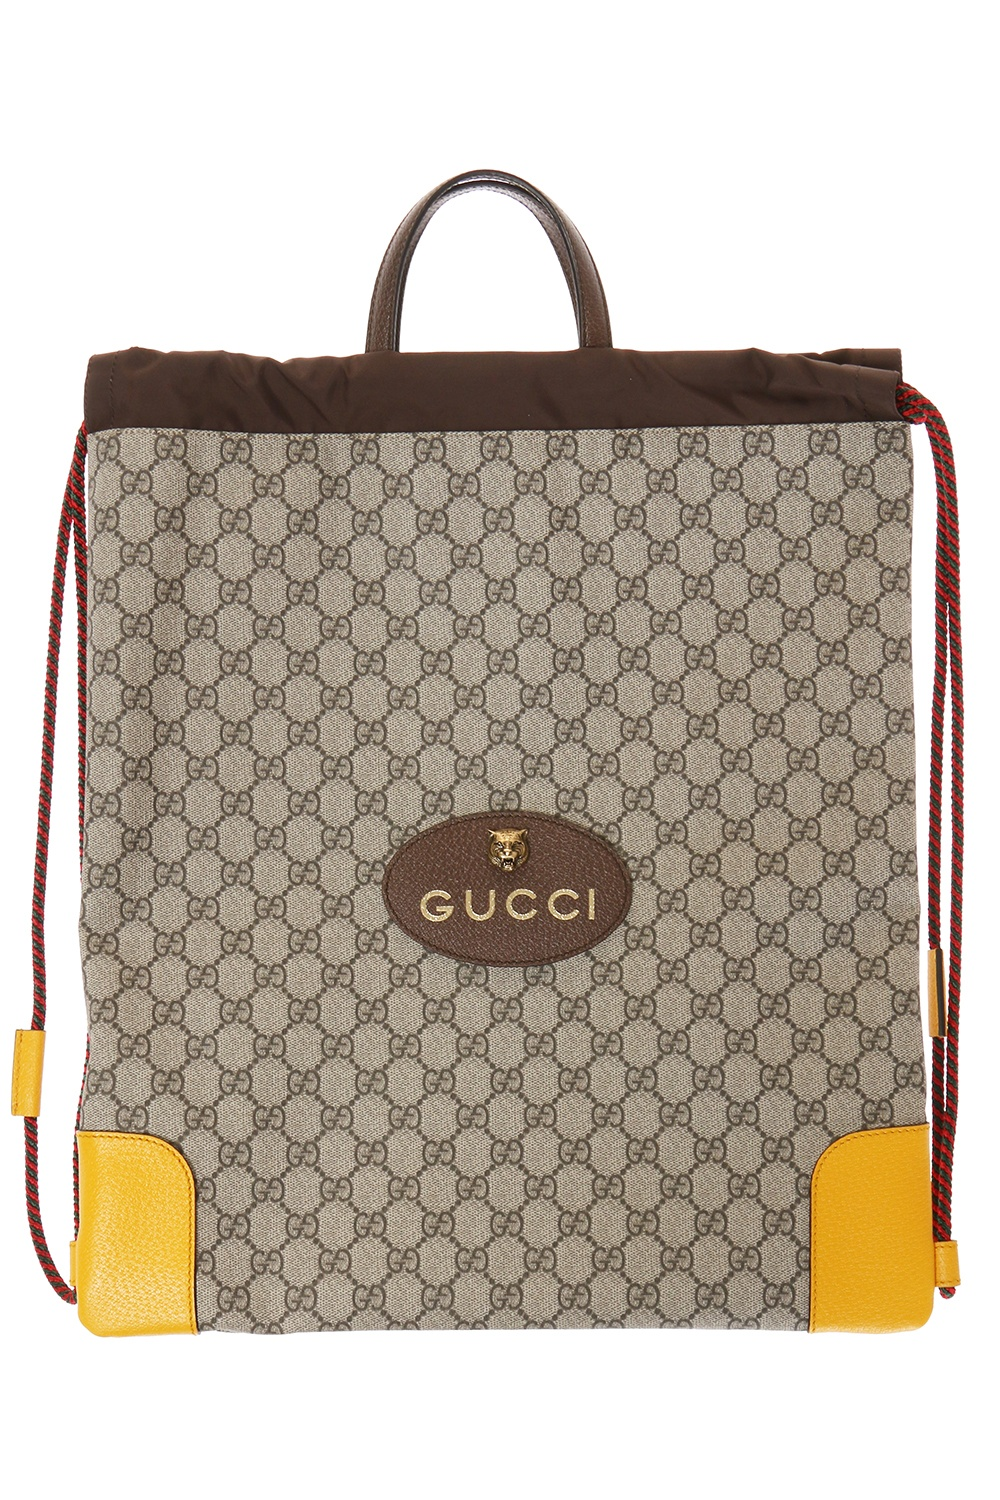 Gucci 'GG Supreme' canvas backpack